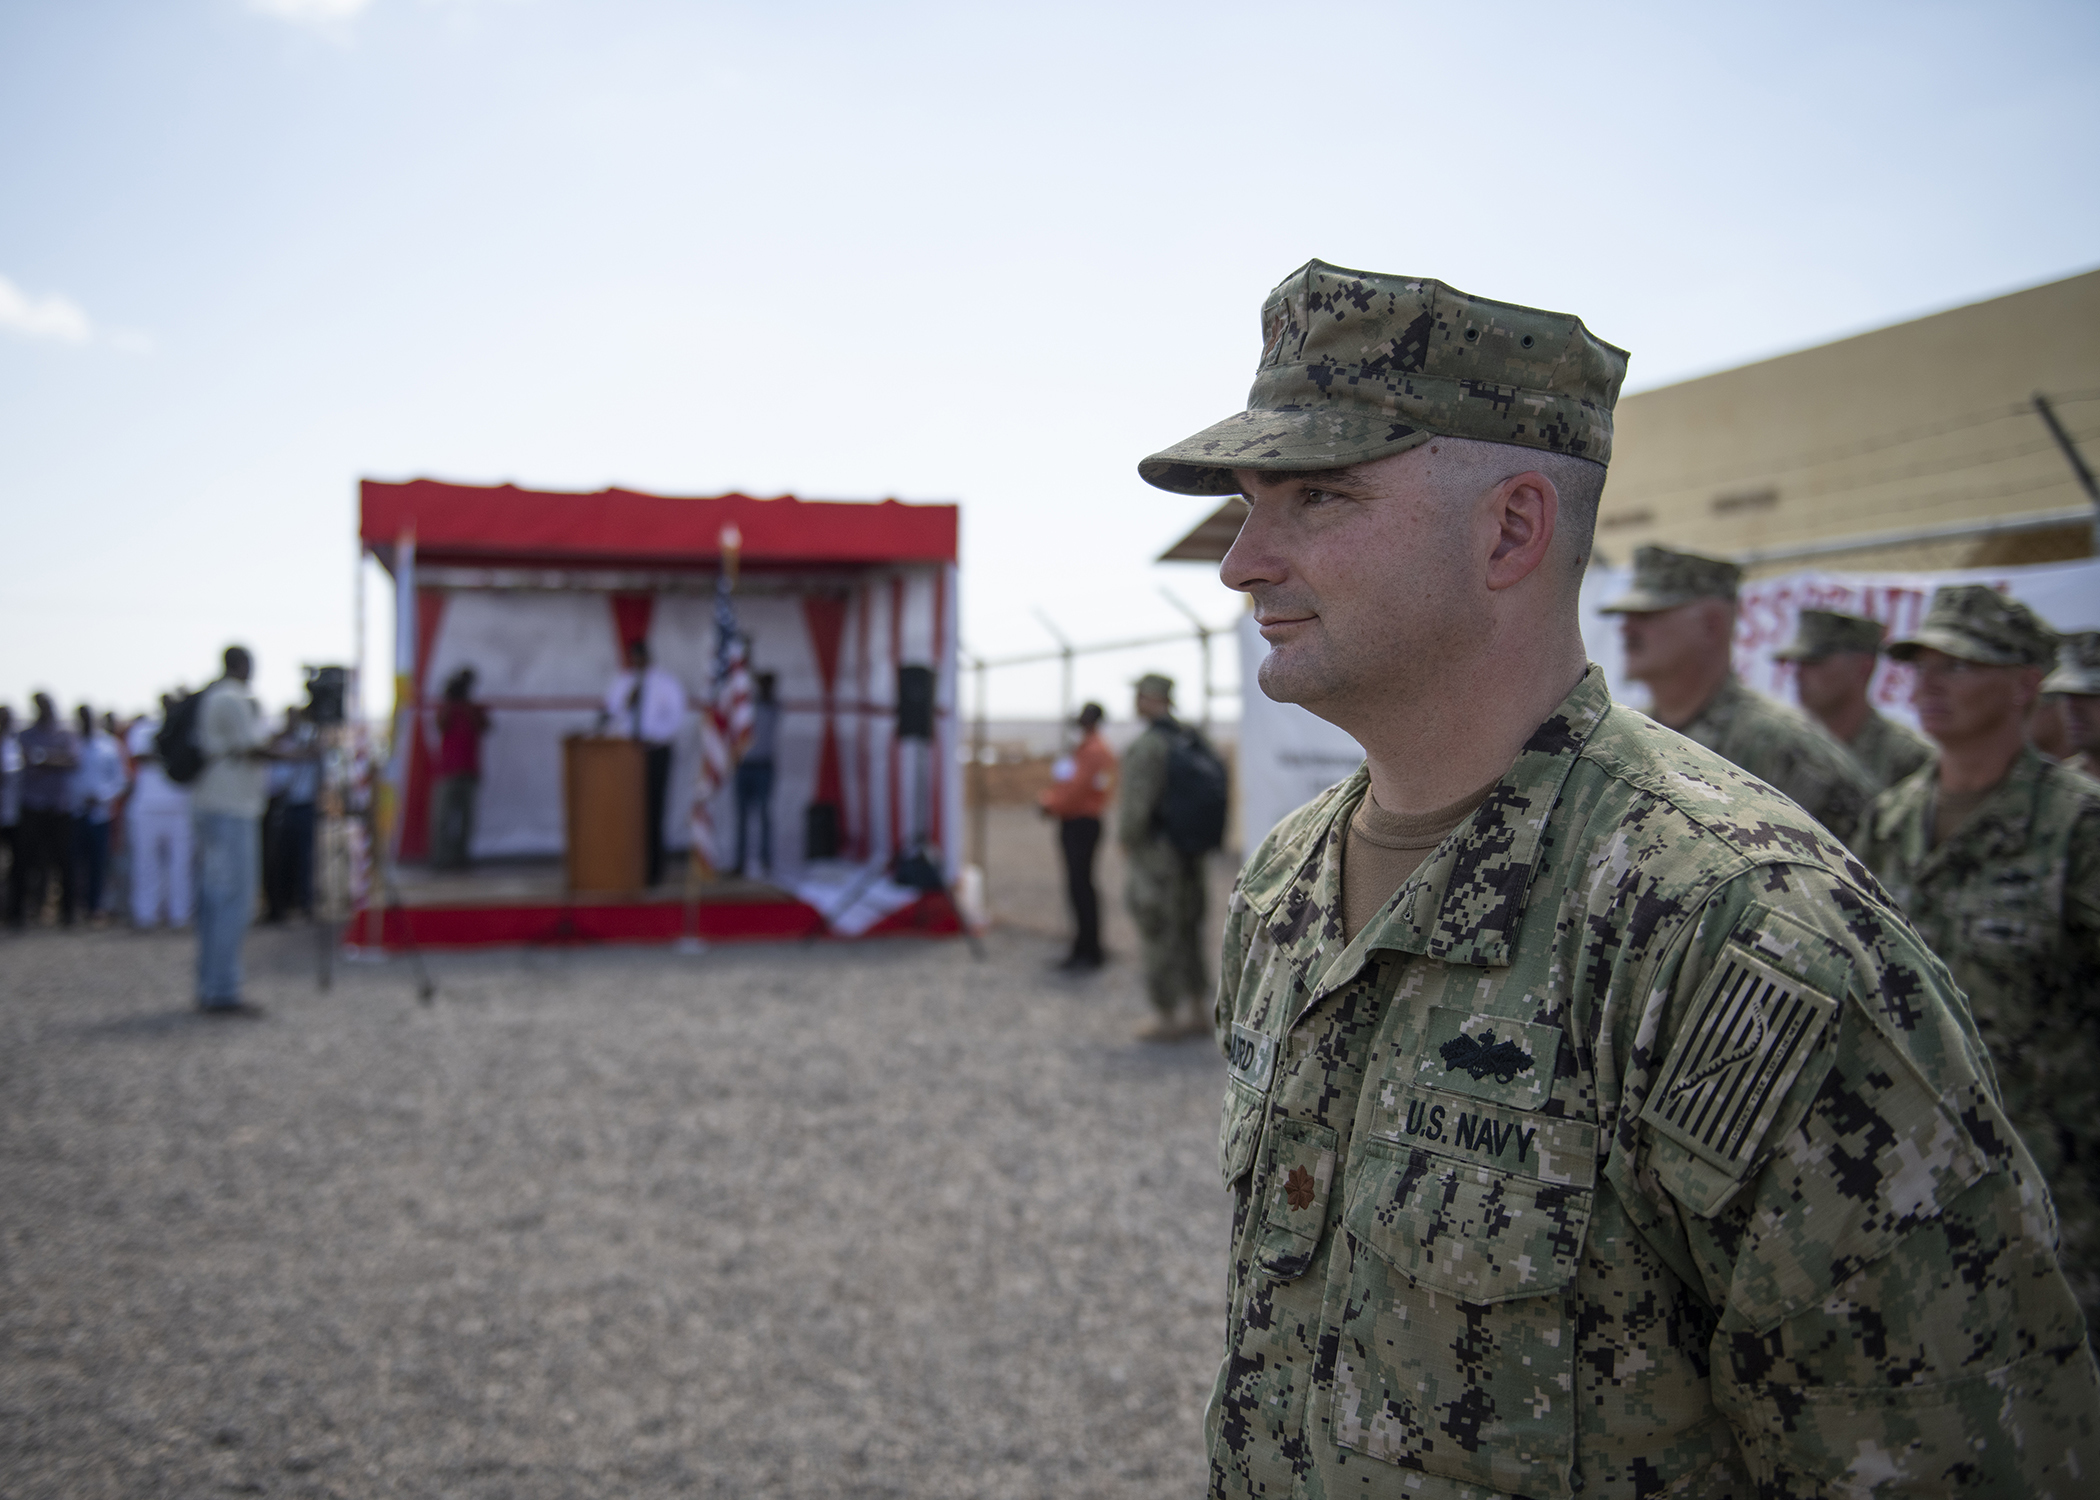 U.S. Navy Seabee Lt. Cmdr. Matthew Baird, detail officer in charge, Naval Mobile Construction Battalion 1, assigned to Combined Joint Task Force-Horn of Africa (CJTF-HOA), leads a formation during the Ali Oune Medial Clinic ribbon cutting ceremony in Ali Oune, Djibouti, Jan. 31, 2019. The clinic, which the Seabees have worked on for five months, is intended to enhance the Ministry of Health for Djibouti's ability to provide basic medical, birth and after care to the Ali Oune village and its more than 1,000 residents and rural neighbors. (U.S. Air Force photo by Tech. Sgt. Shawn Nickel)